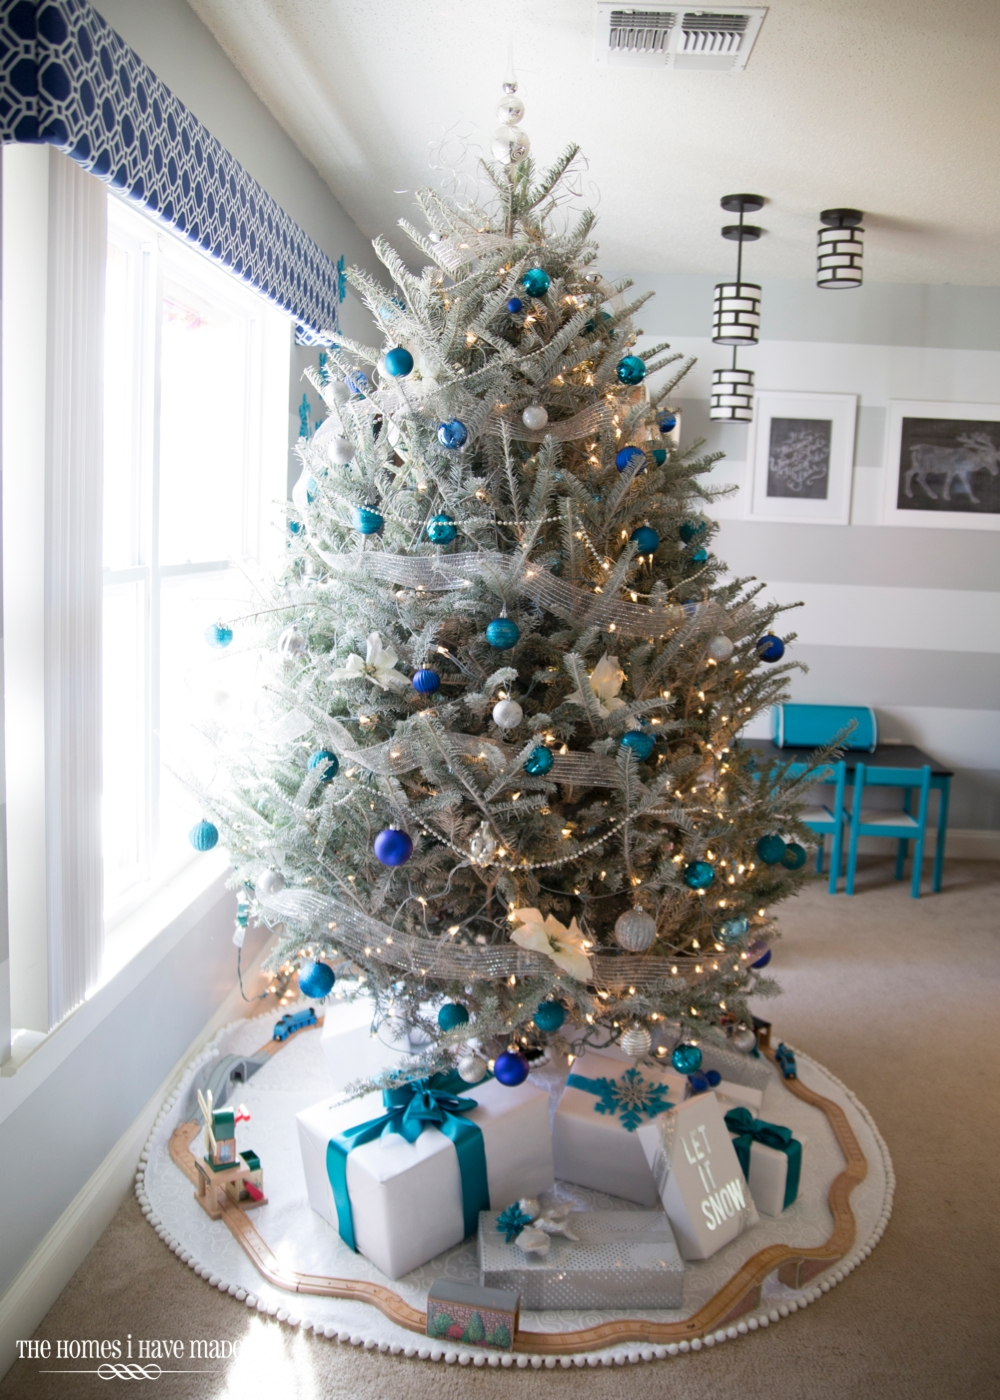 Turquoise Christmas Tree.A Turquoise Blue And Silver Christmas The Homes I Have Made